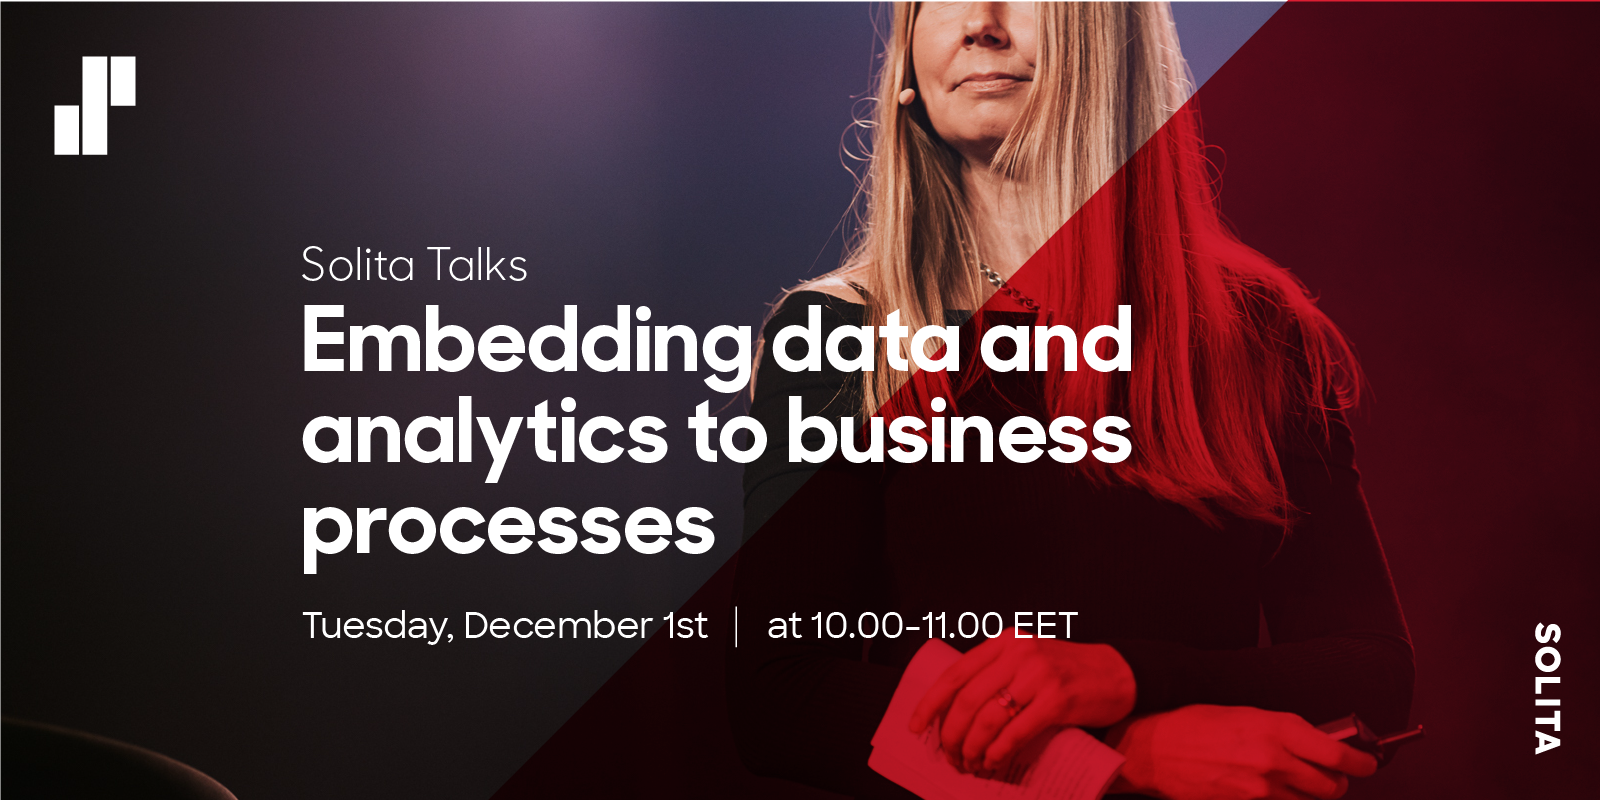 Solita Talks Embedding data and analytics to business processes